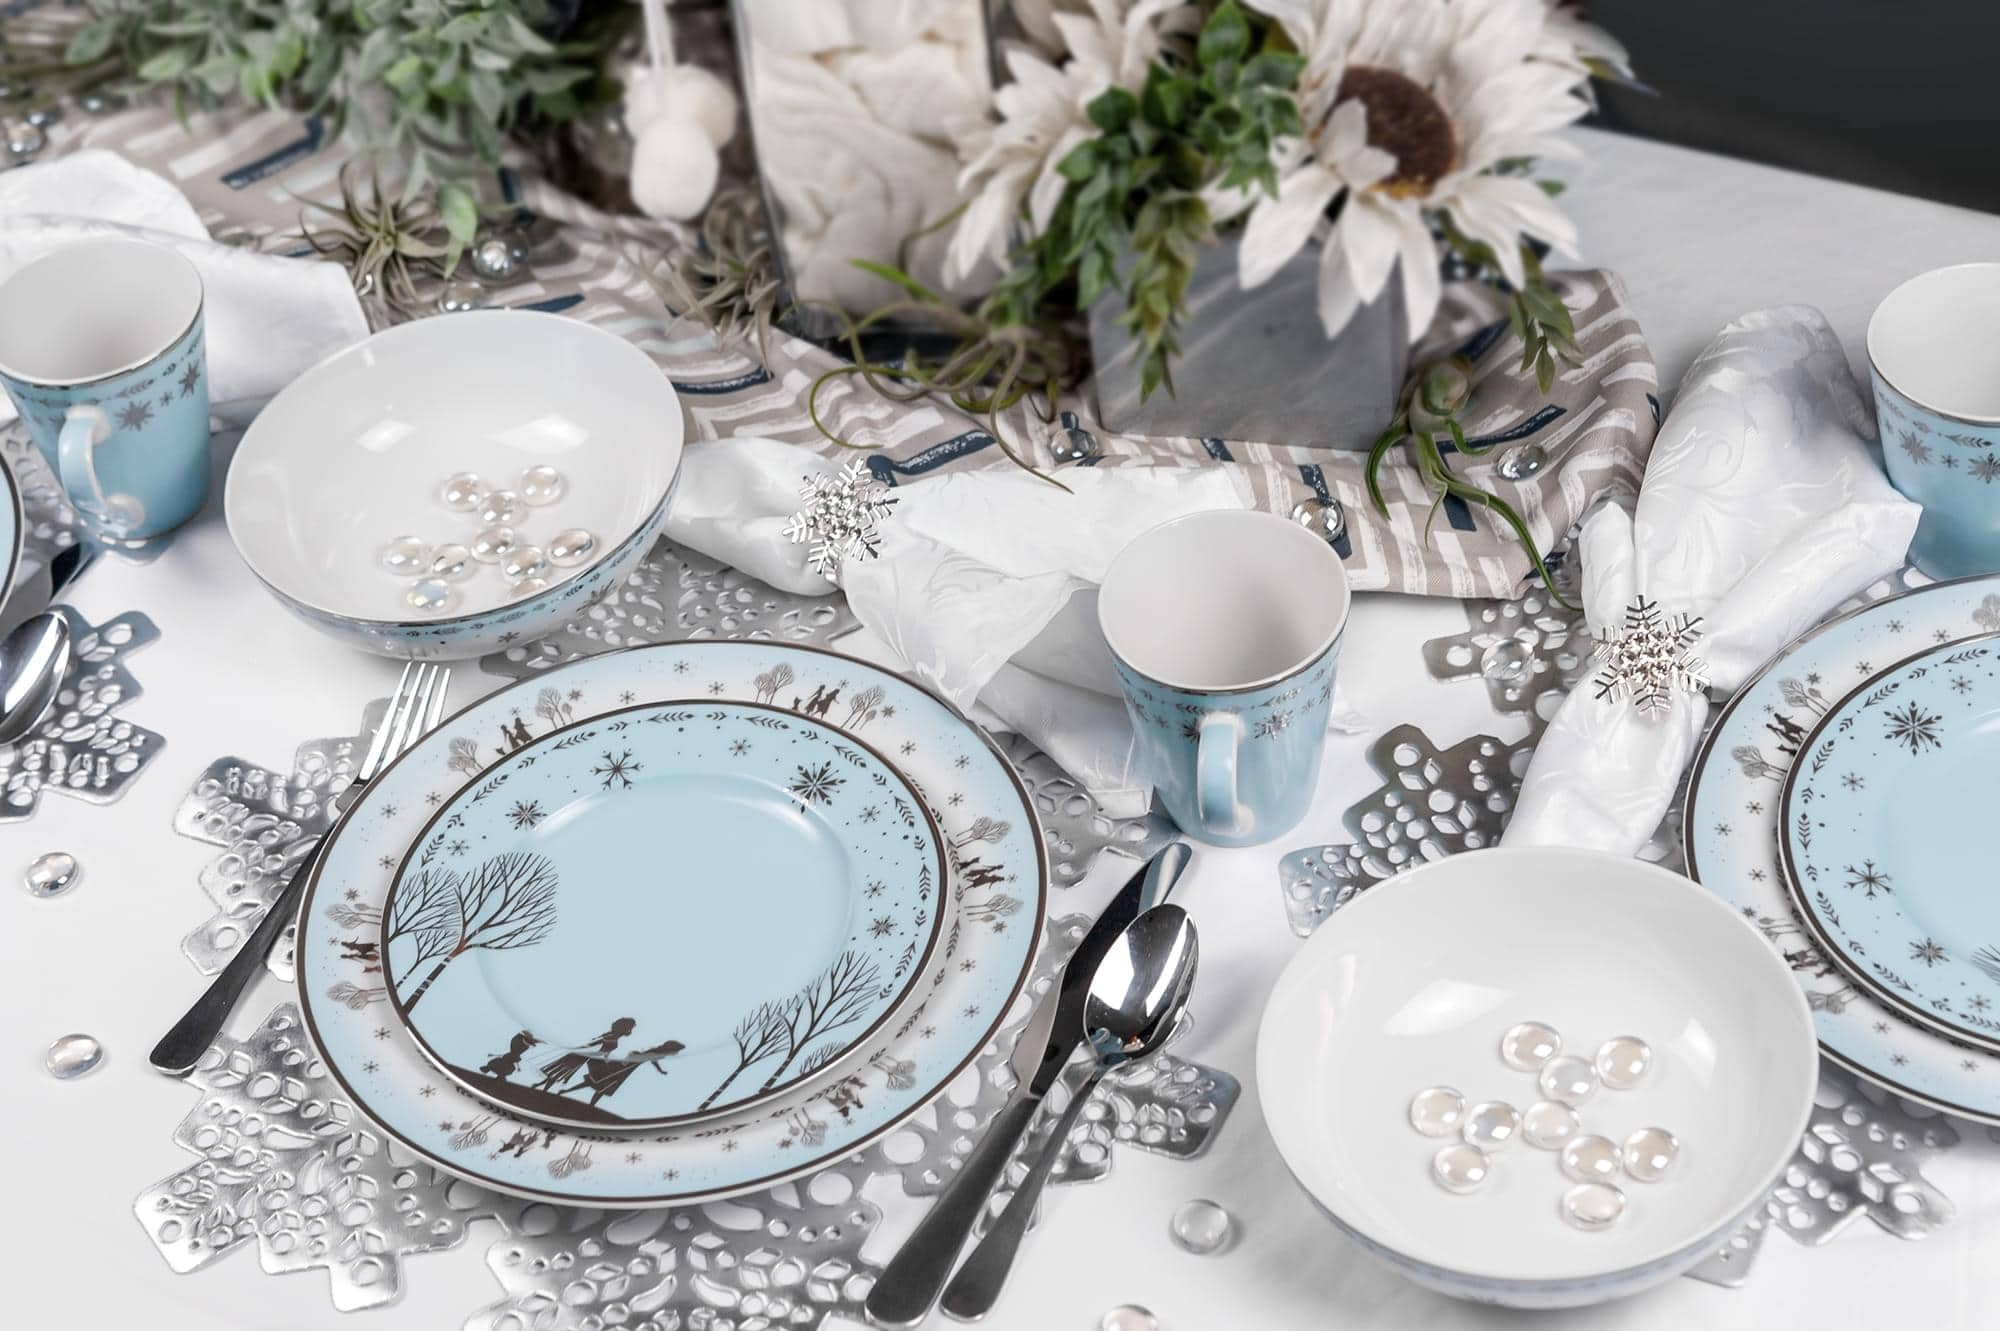 Elegant Disney Princess dinnerware collection features Frozen and Mulan 16